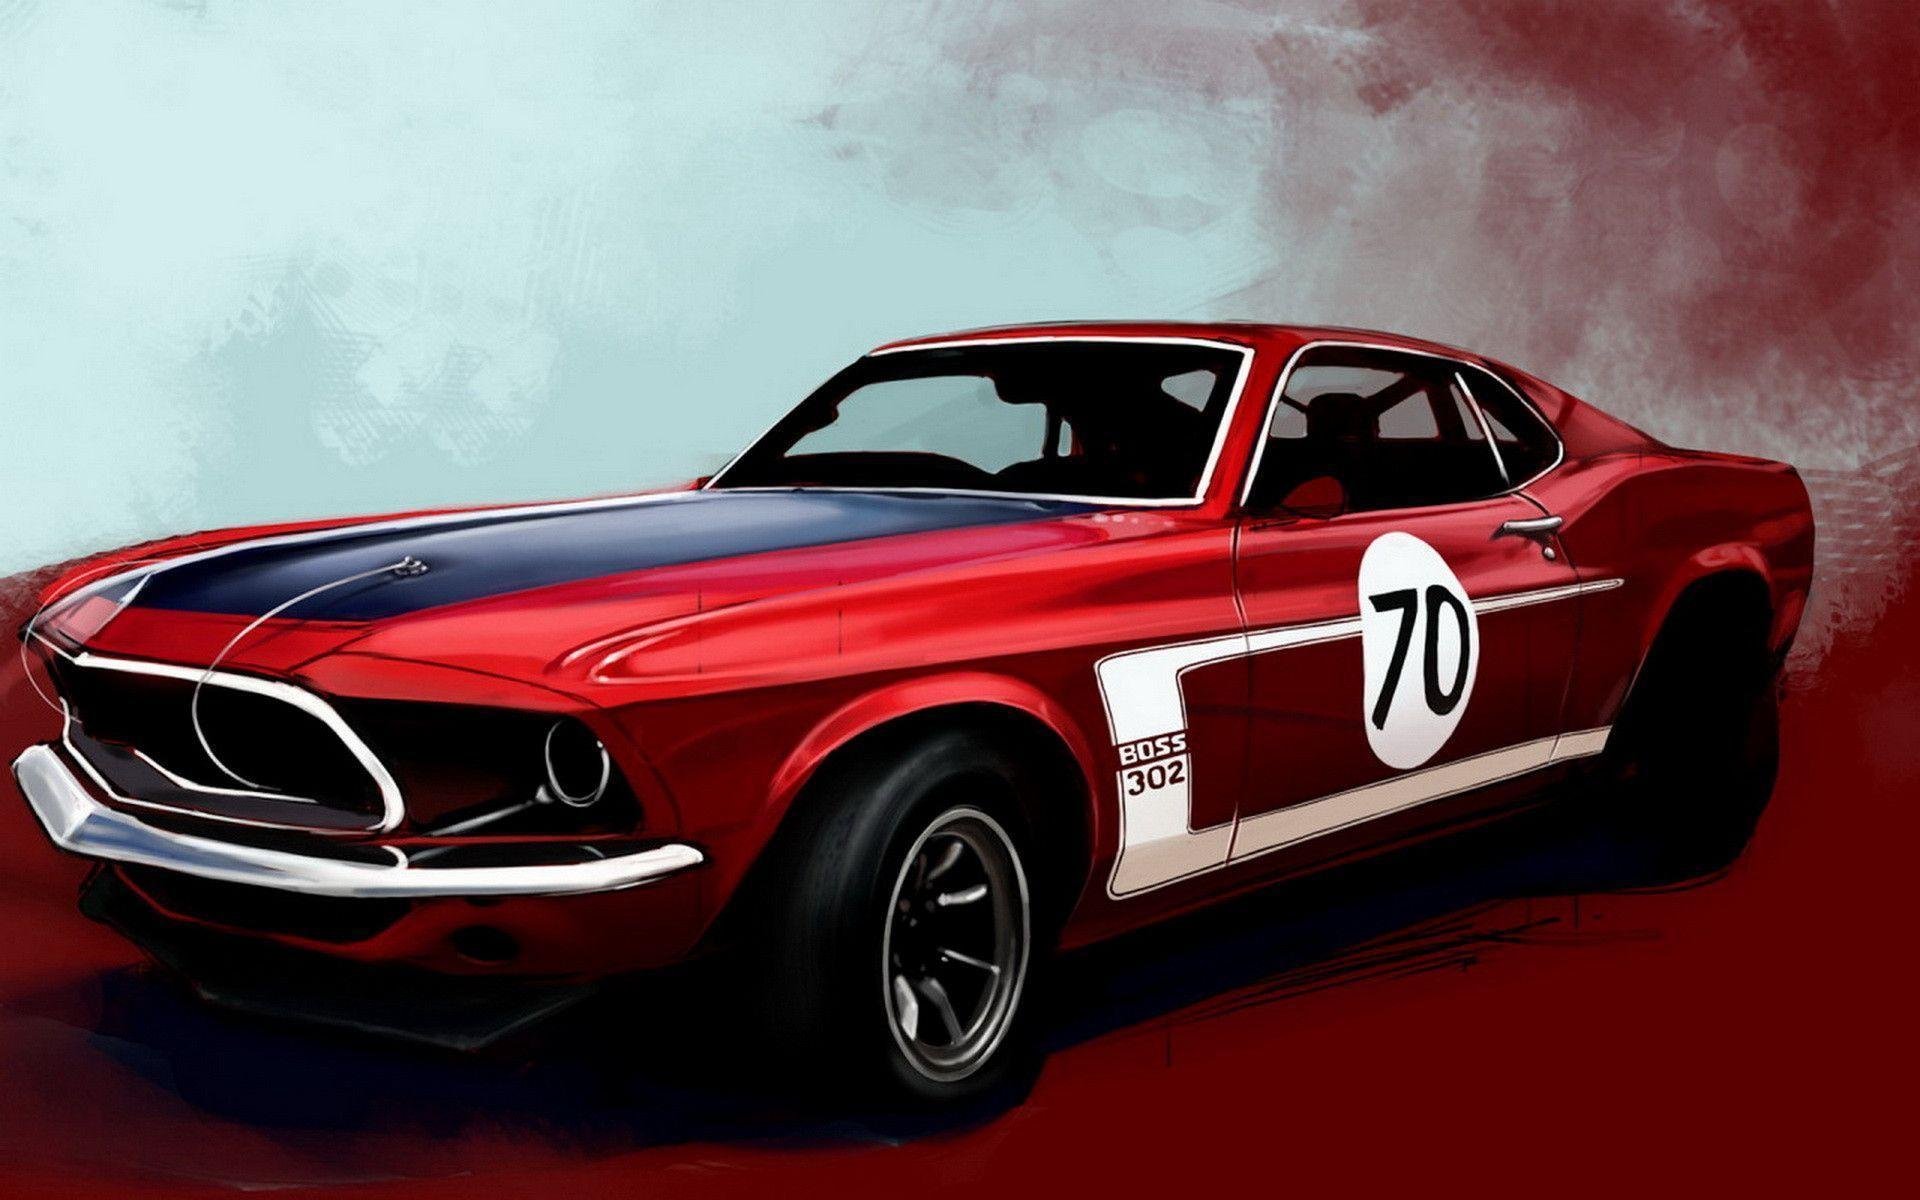 Cool Cars Wallpaper With Background 4753 Full HD Wallpaper Desktop ...